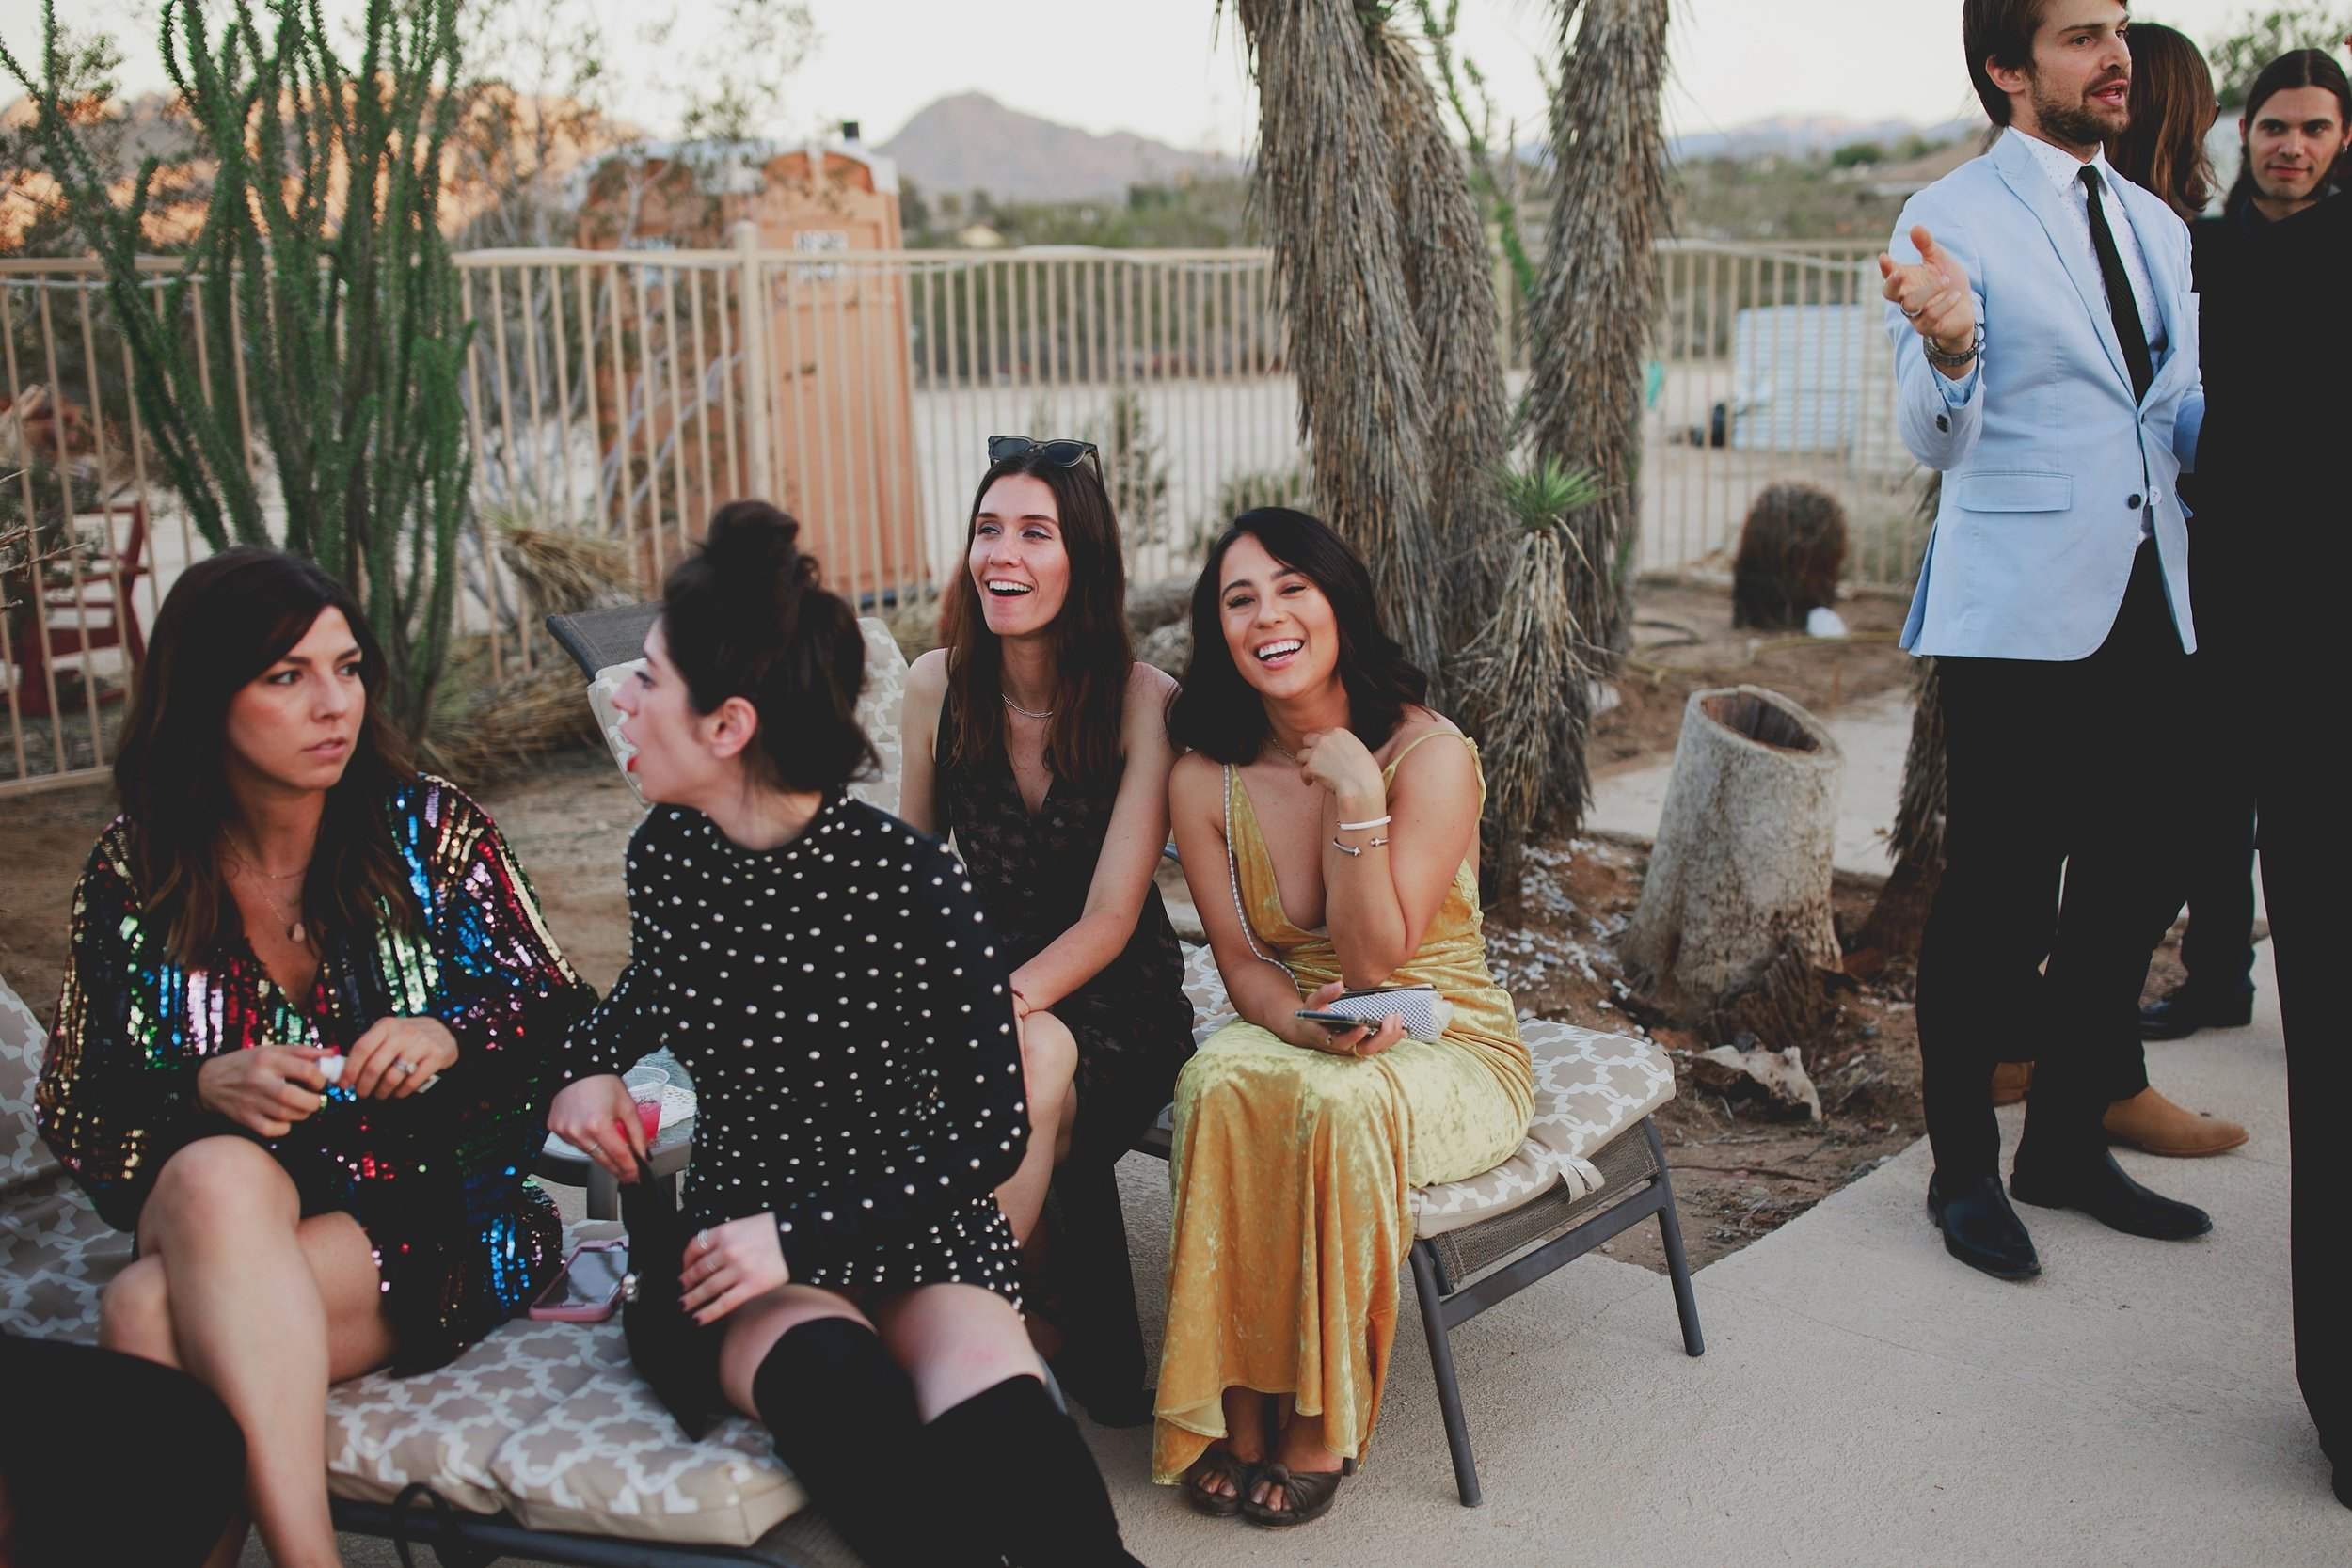 amanda_vanvels_joshua_tree_inn_wedding_142.jpg